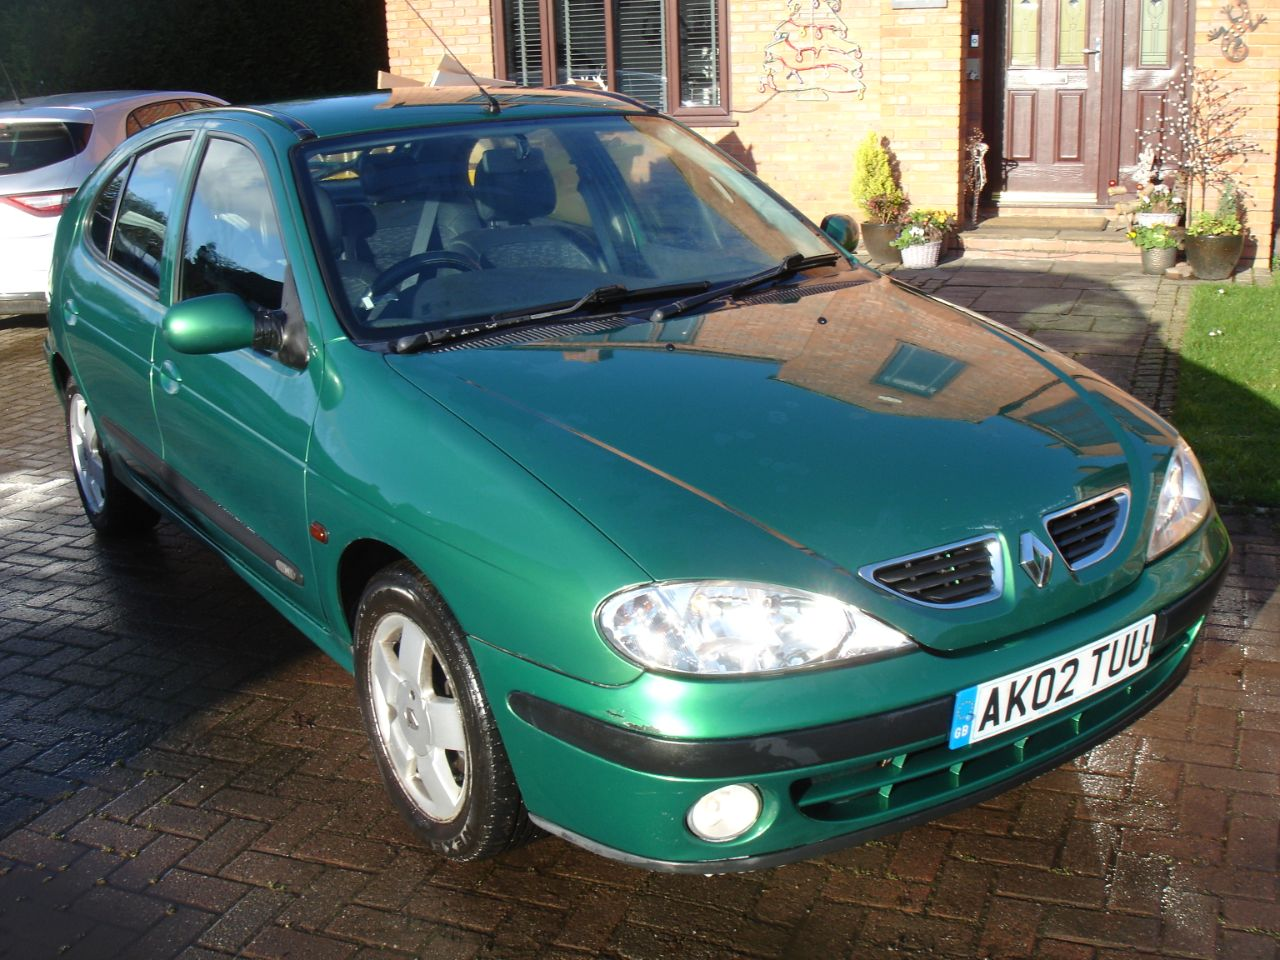 Renault Megane 1.6 16V Fidji 5dr Auto Hatchback Petrol Metallic Green at Level Pitch Selby